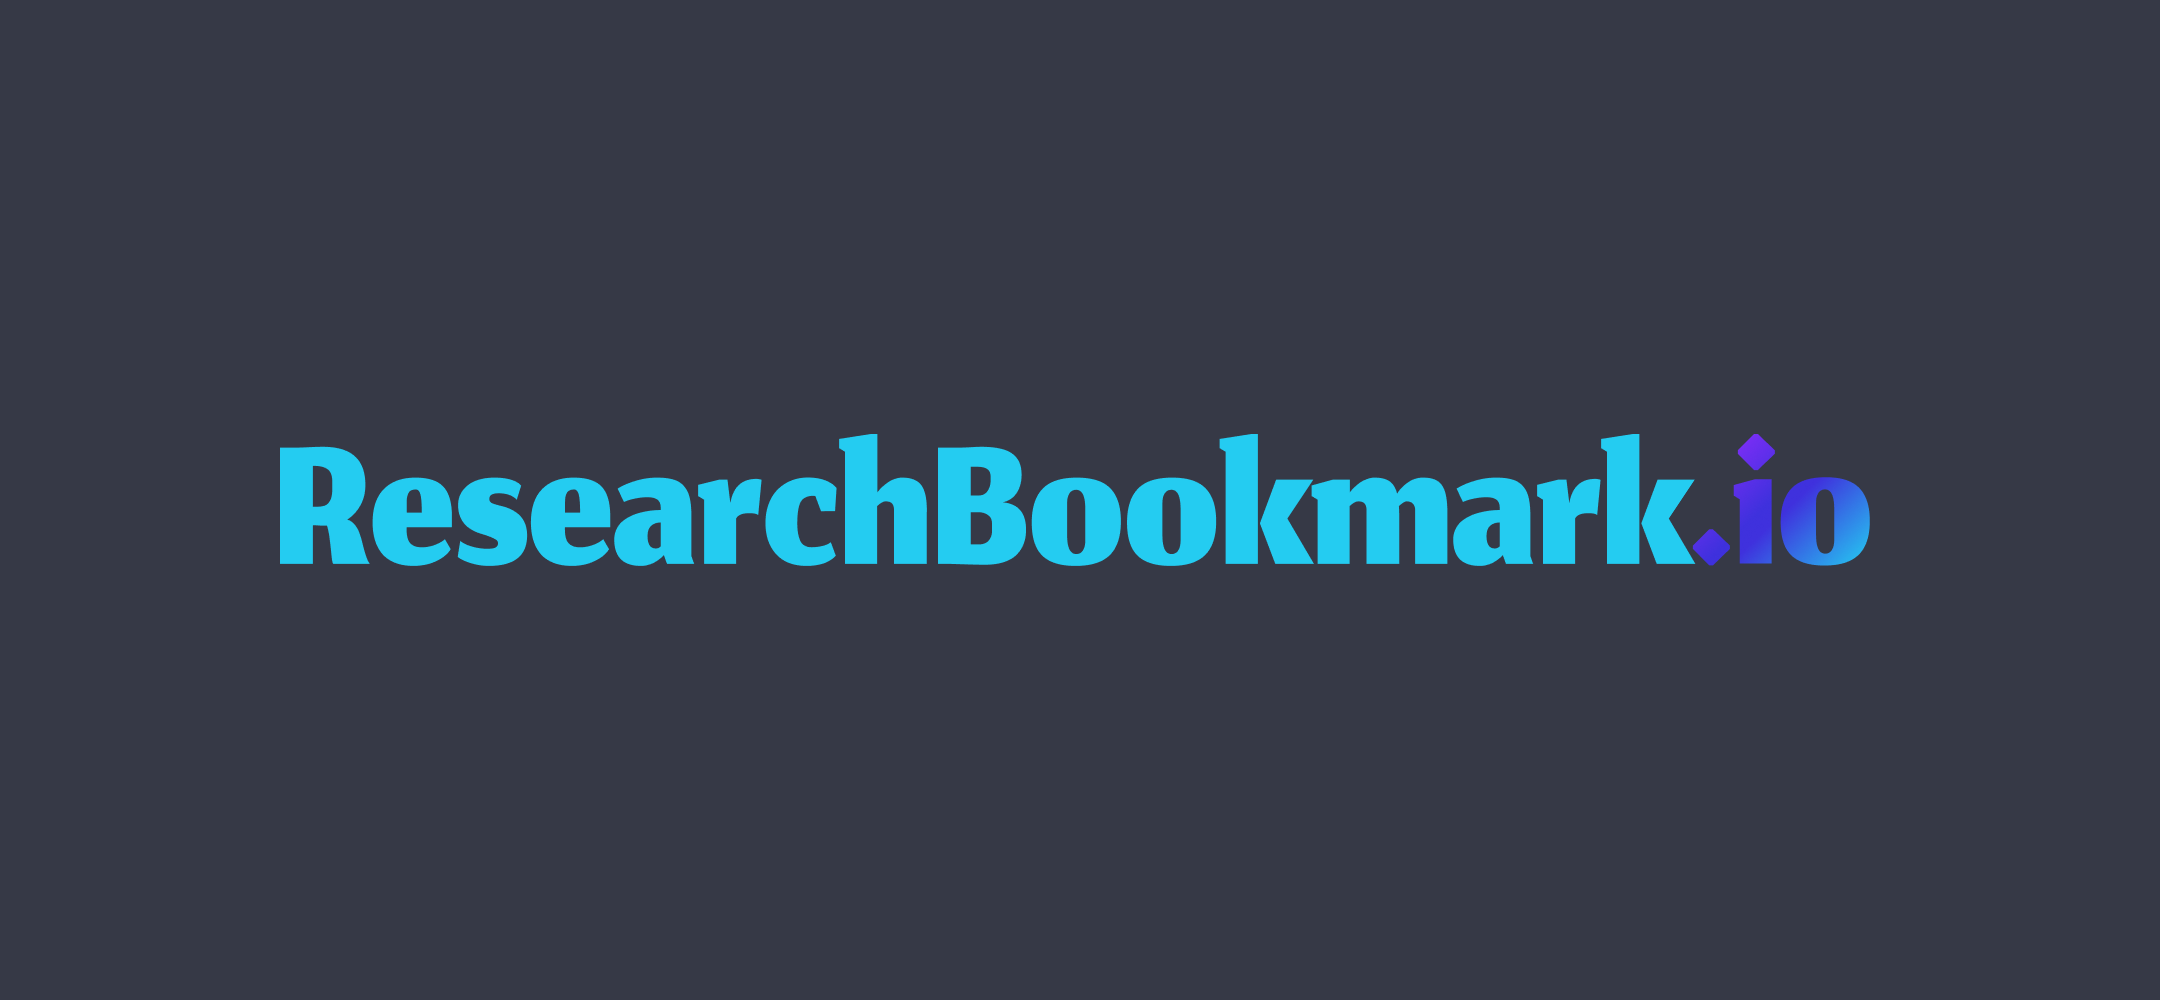 Research Bookmark